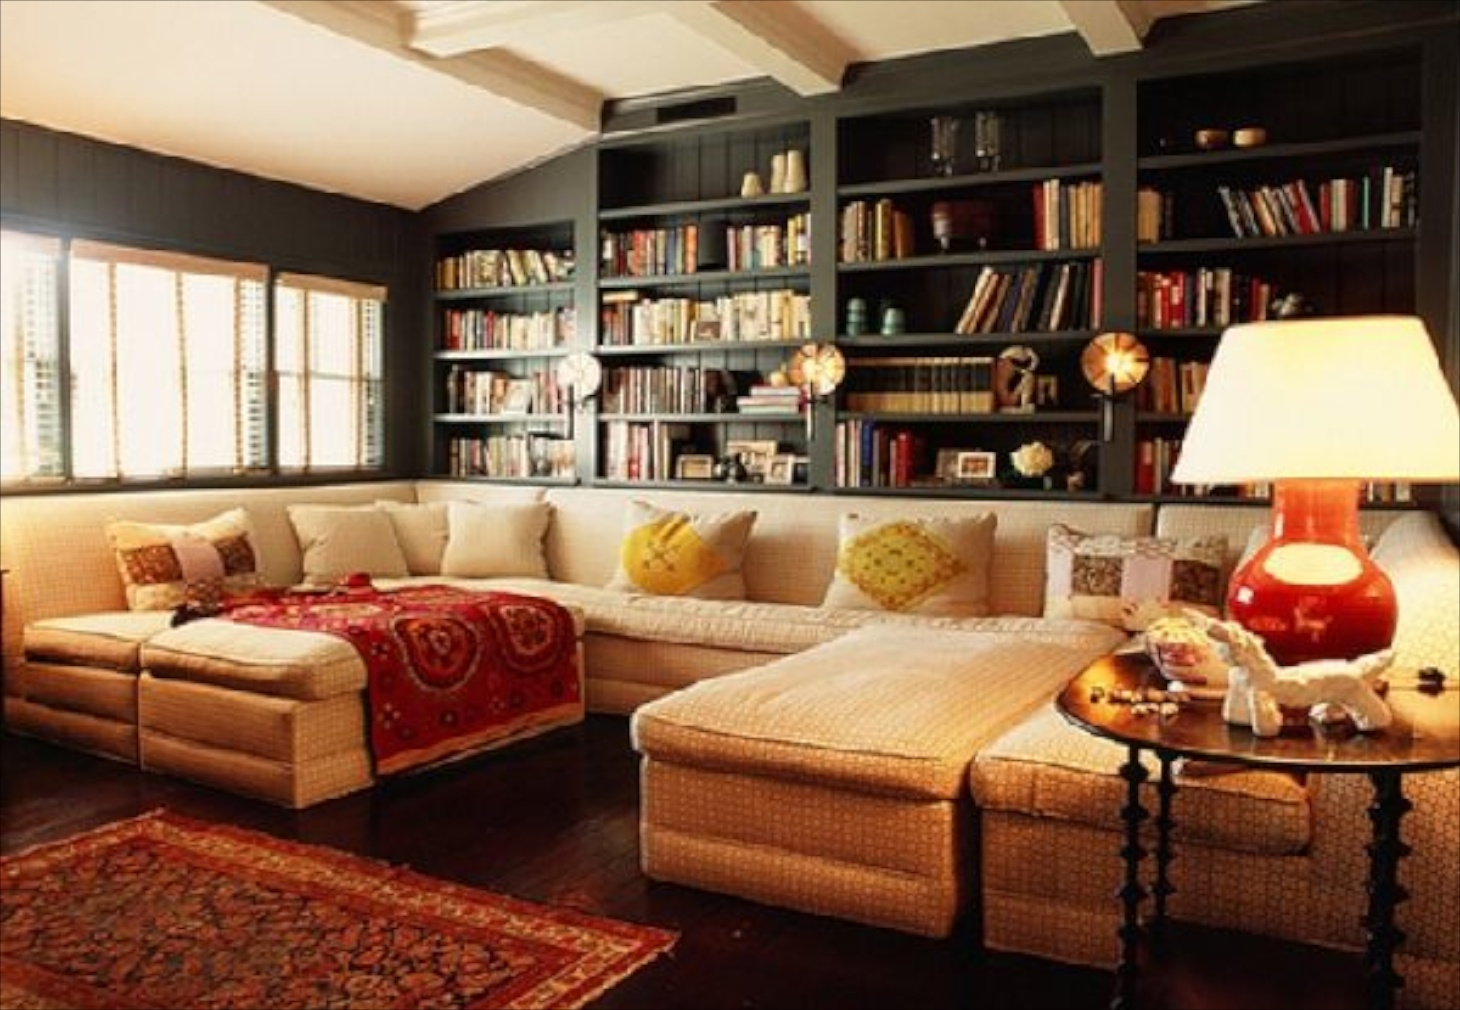 23 sofas and bookcase ideas in cozy living room design for Living room lounge ideas